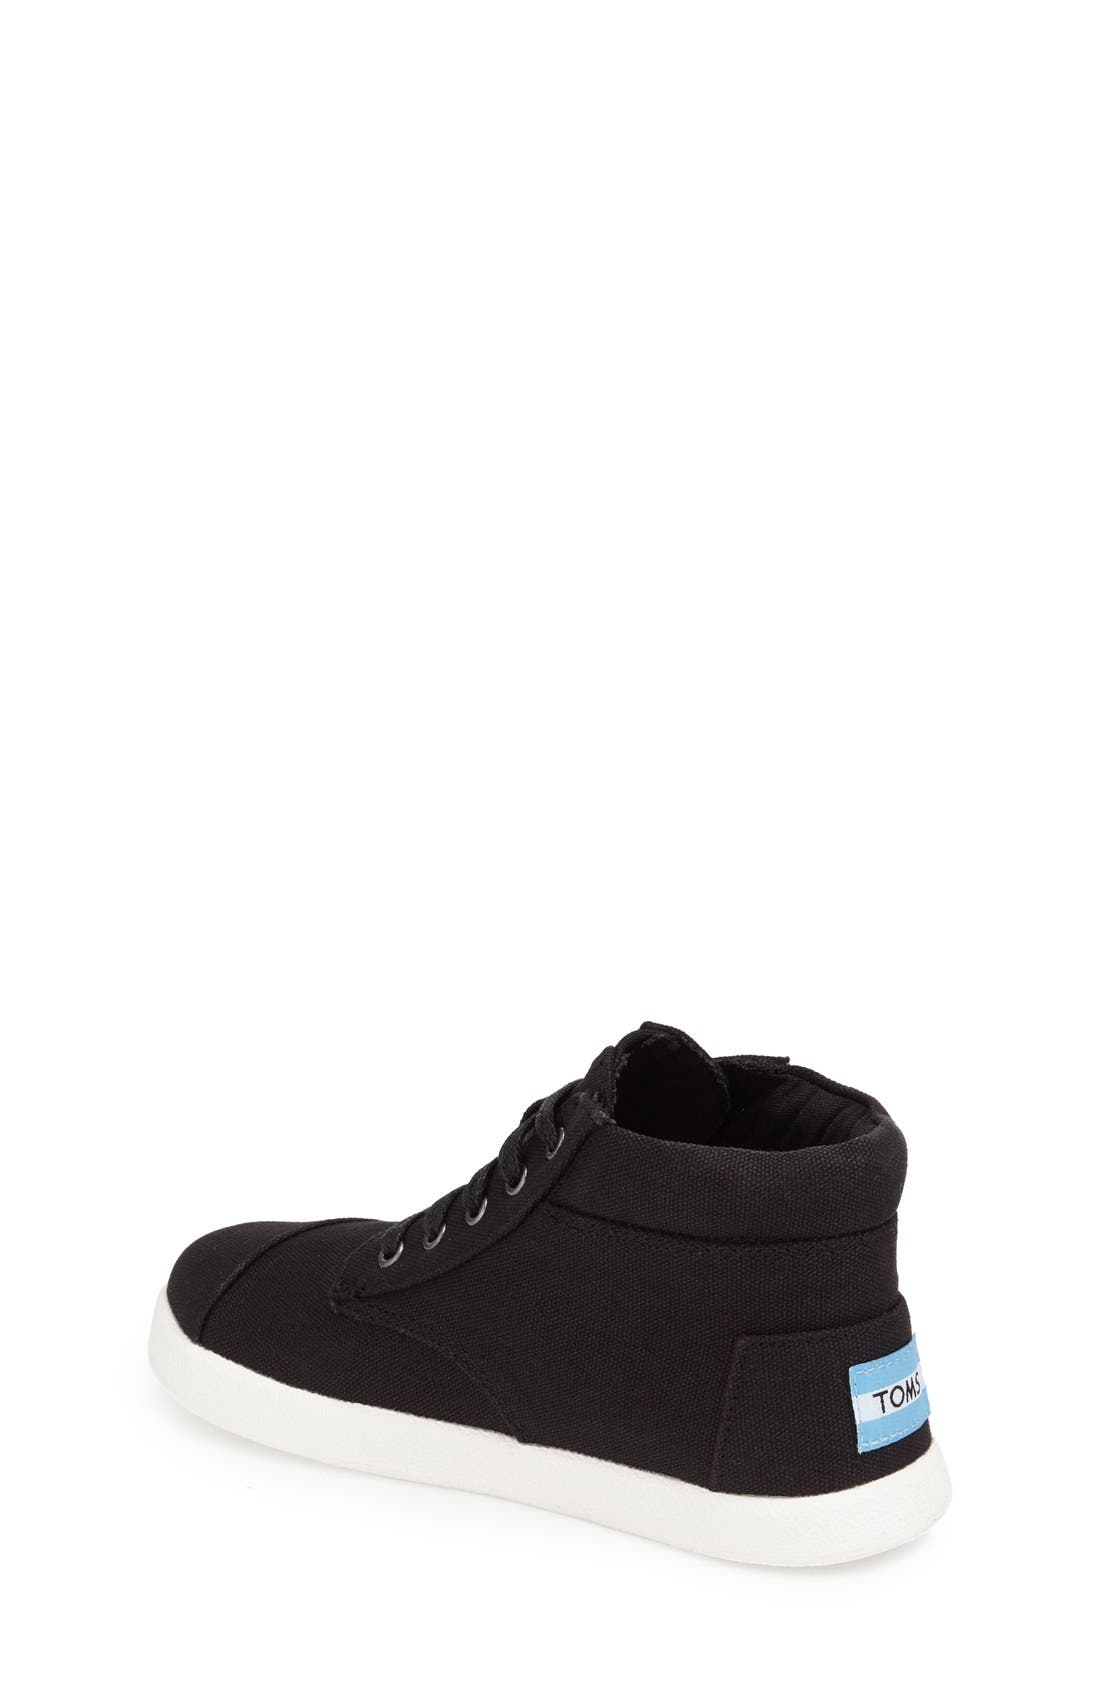 'Paseo' High Top Sneaker,                             Alternate thumbnail 2, color,                             Black